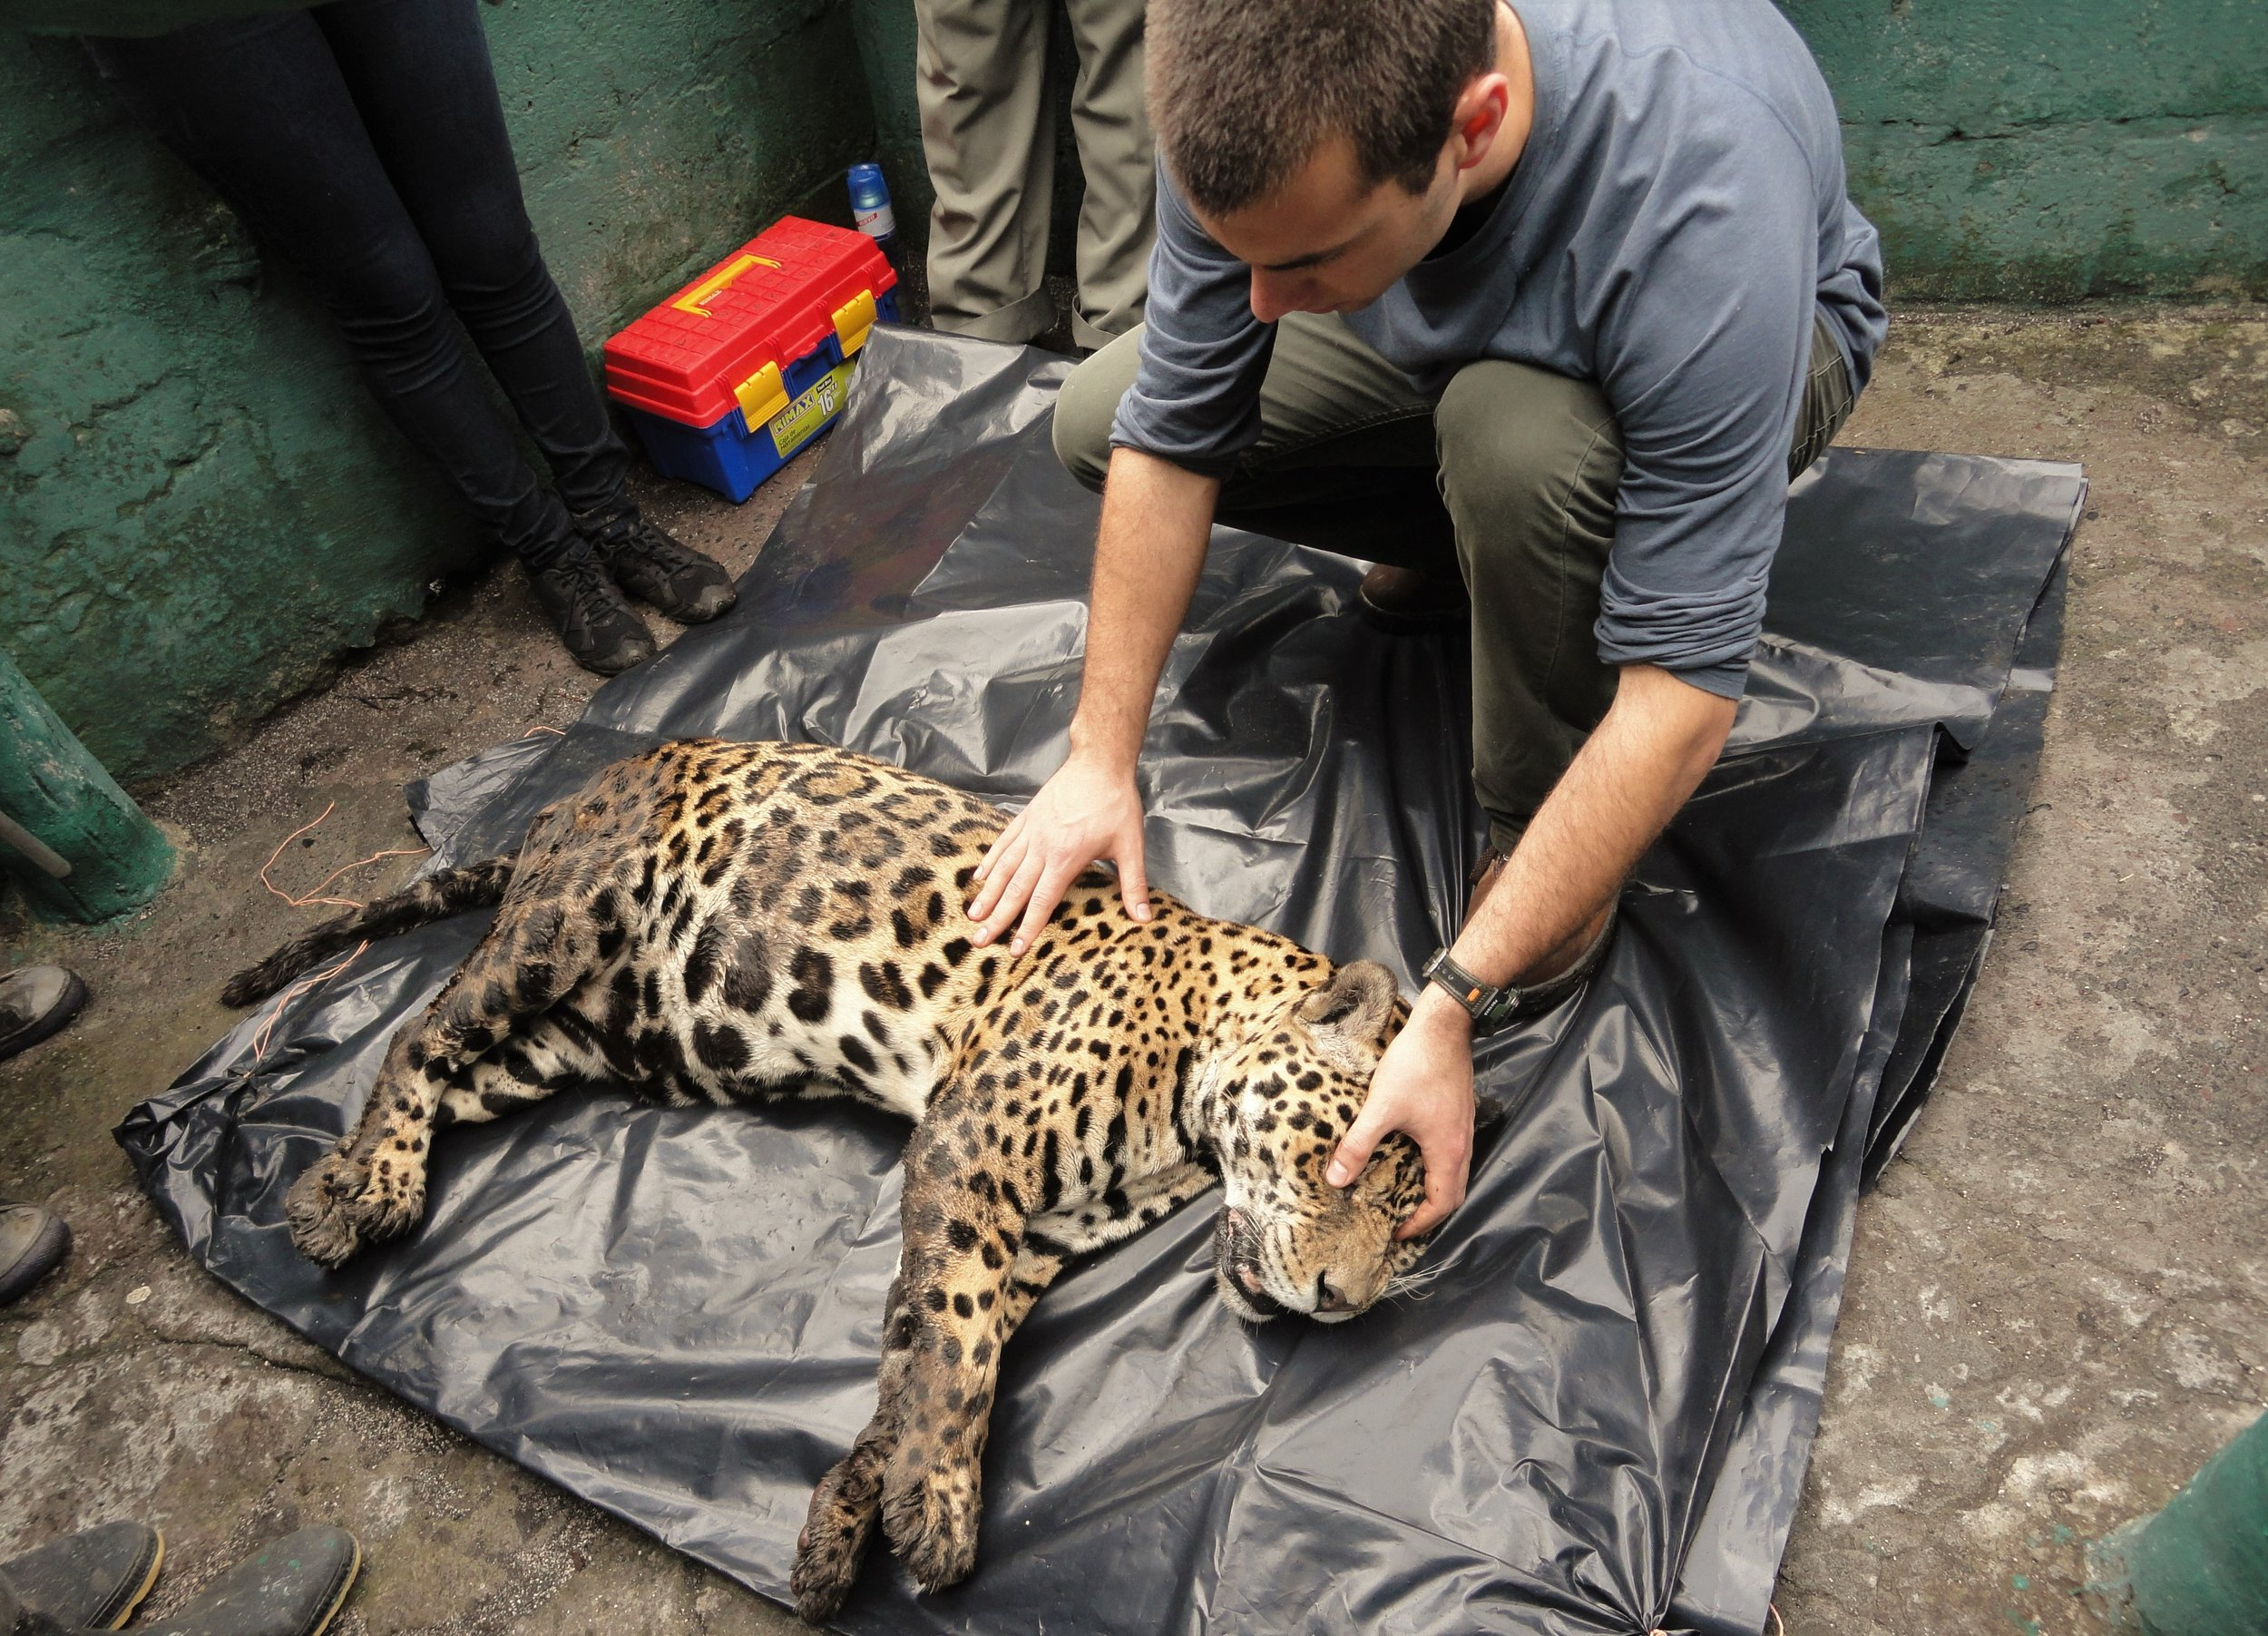 Veterinarian Procedure on a Jaguar in Baños de Agua Santa, Ecuador